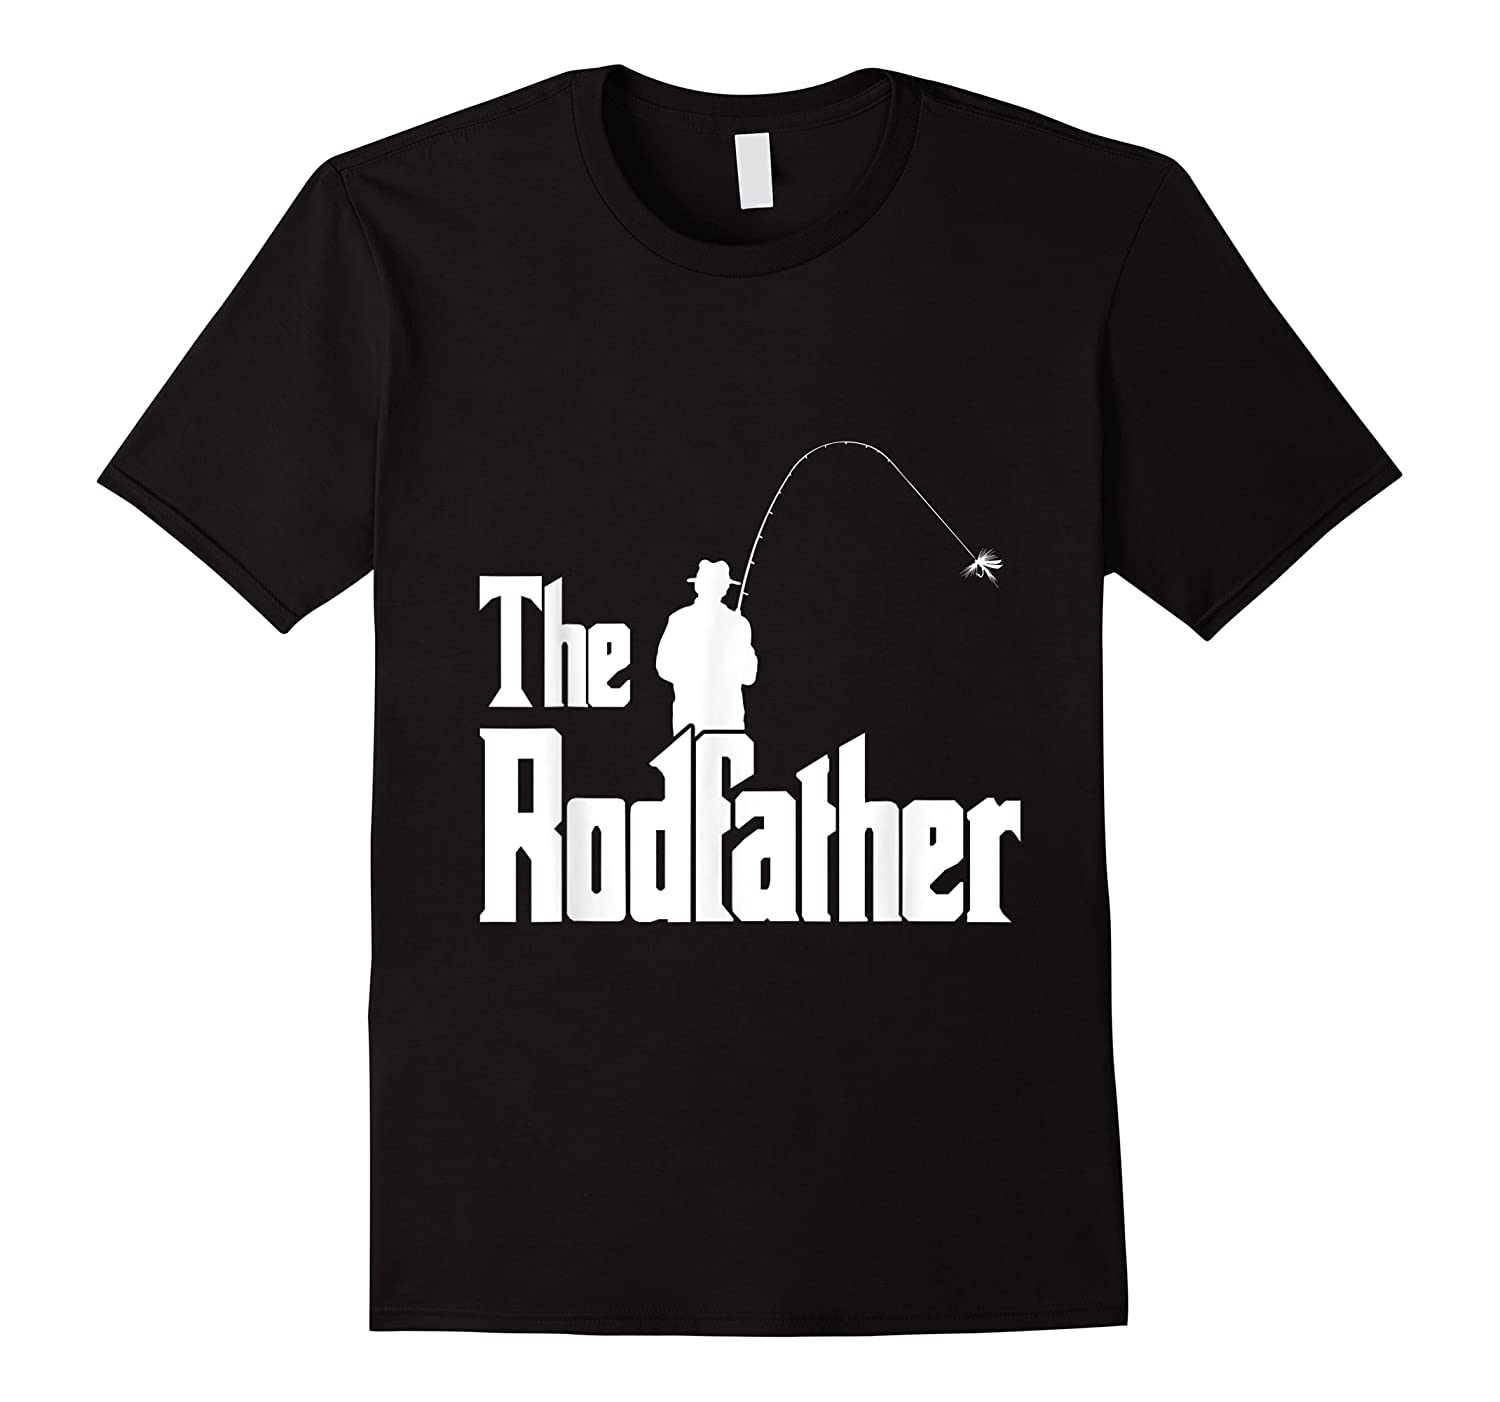 S The Rodfather Funny Fisherman T Shirt Sea, Fly Fishing Tee